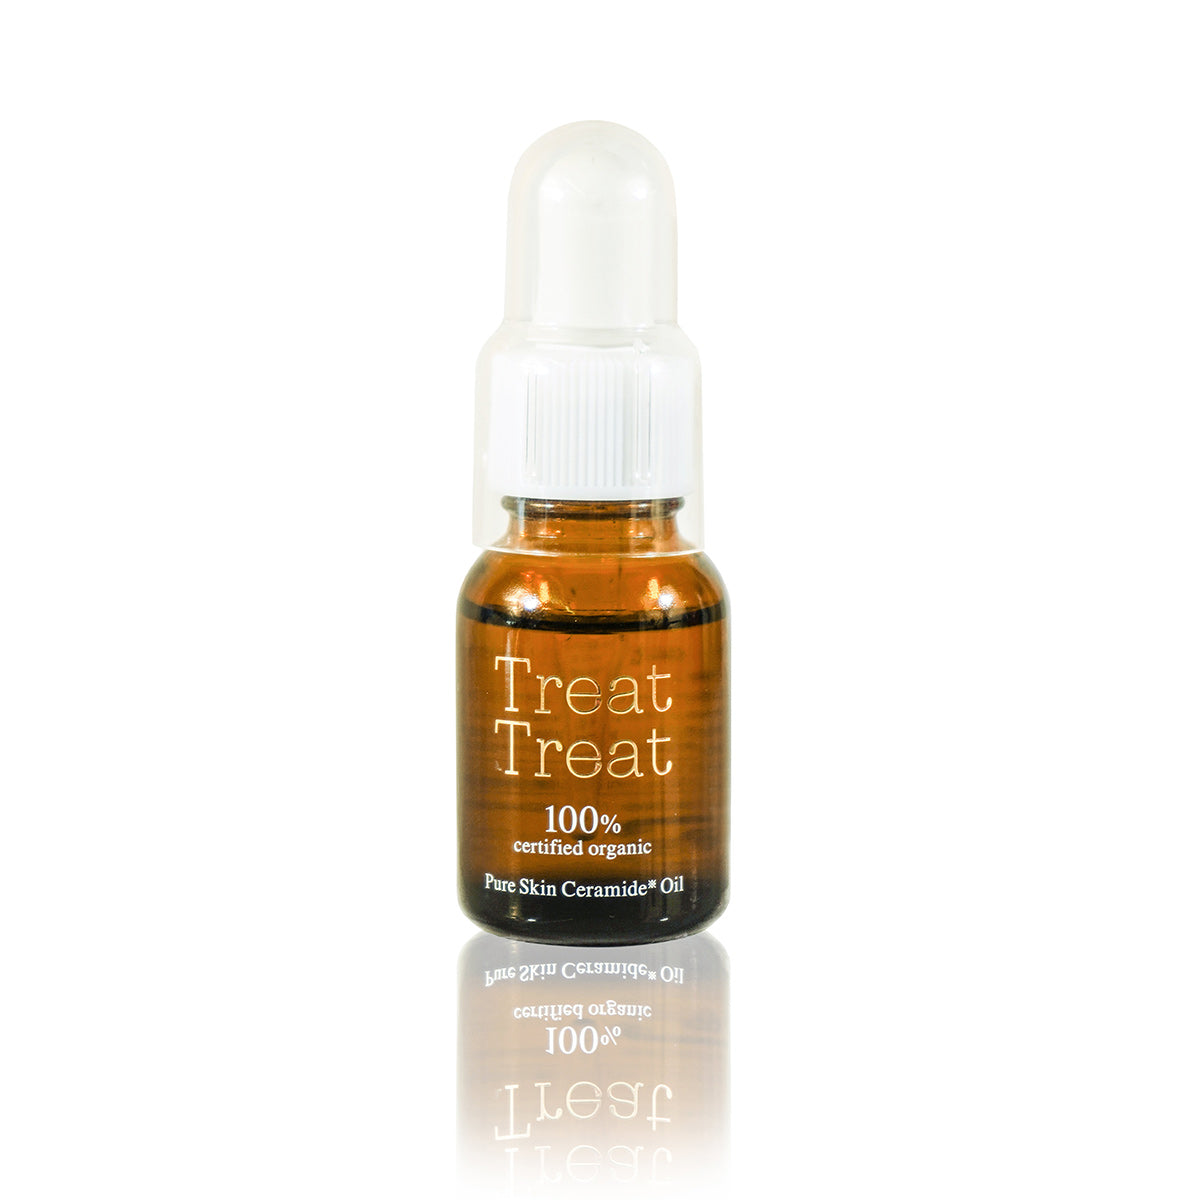 Treat Treat - Pure Skin Ceramide Oil